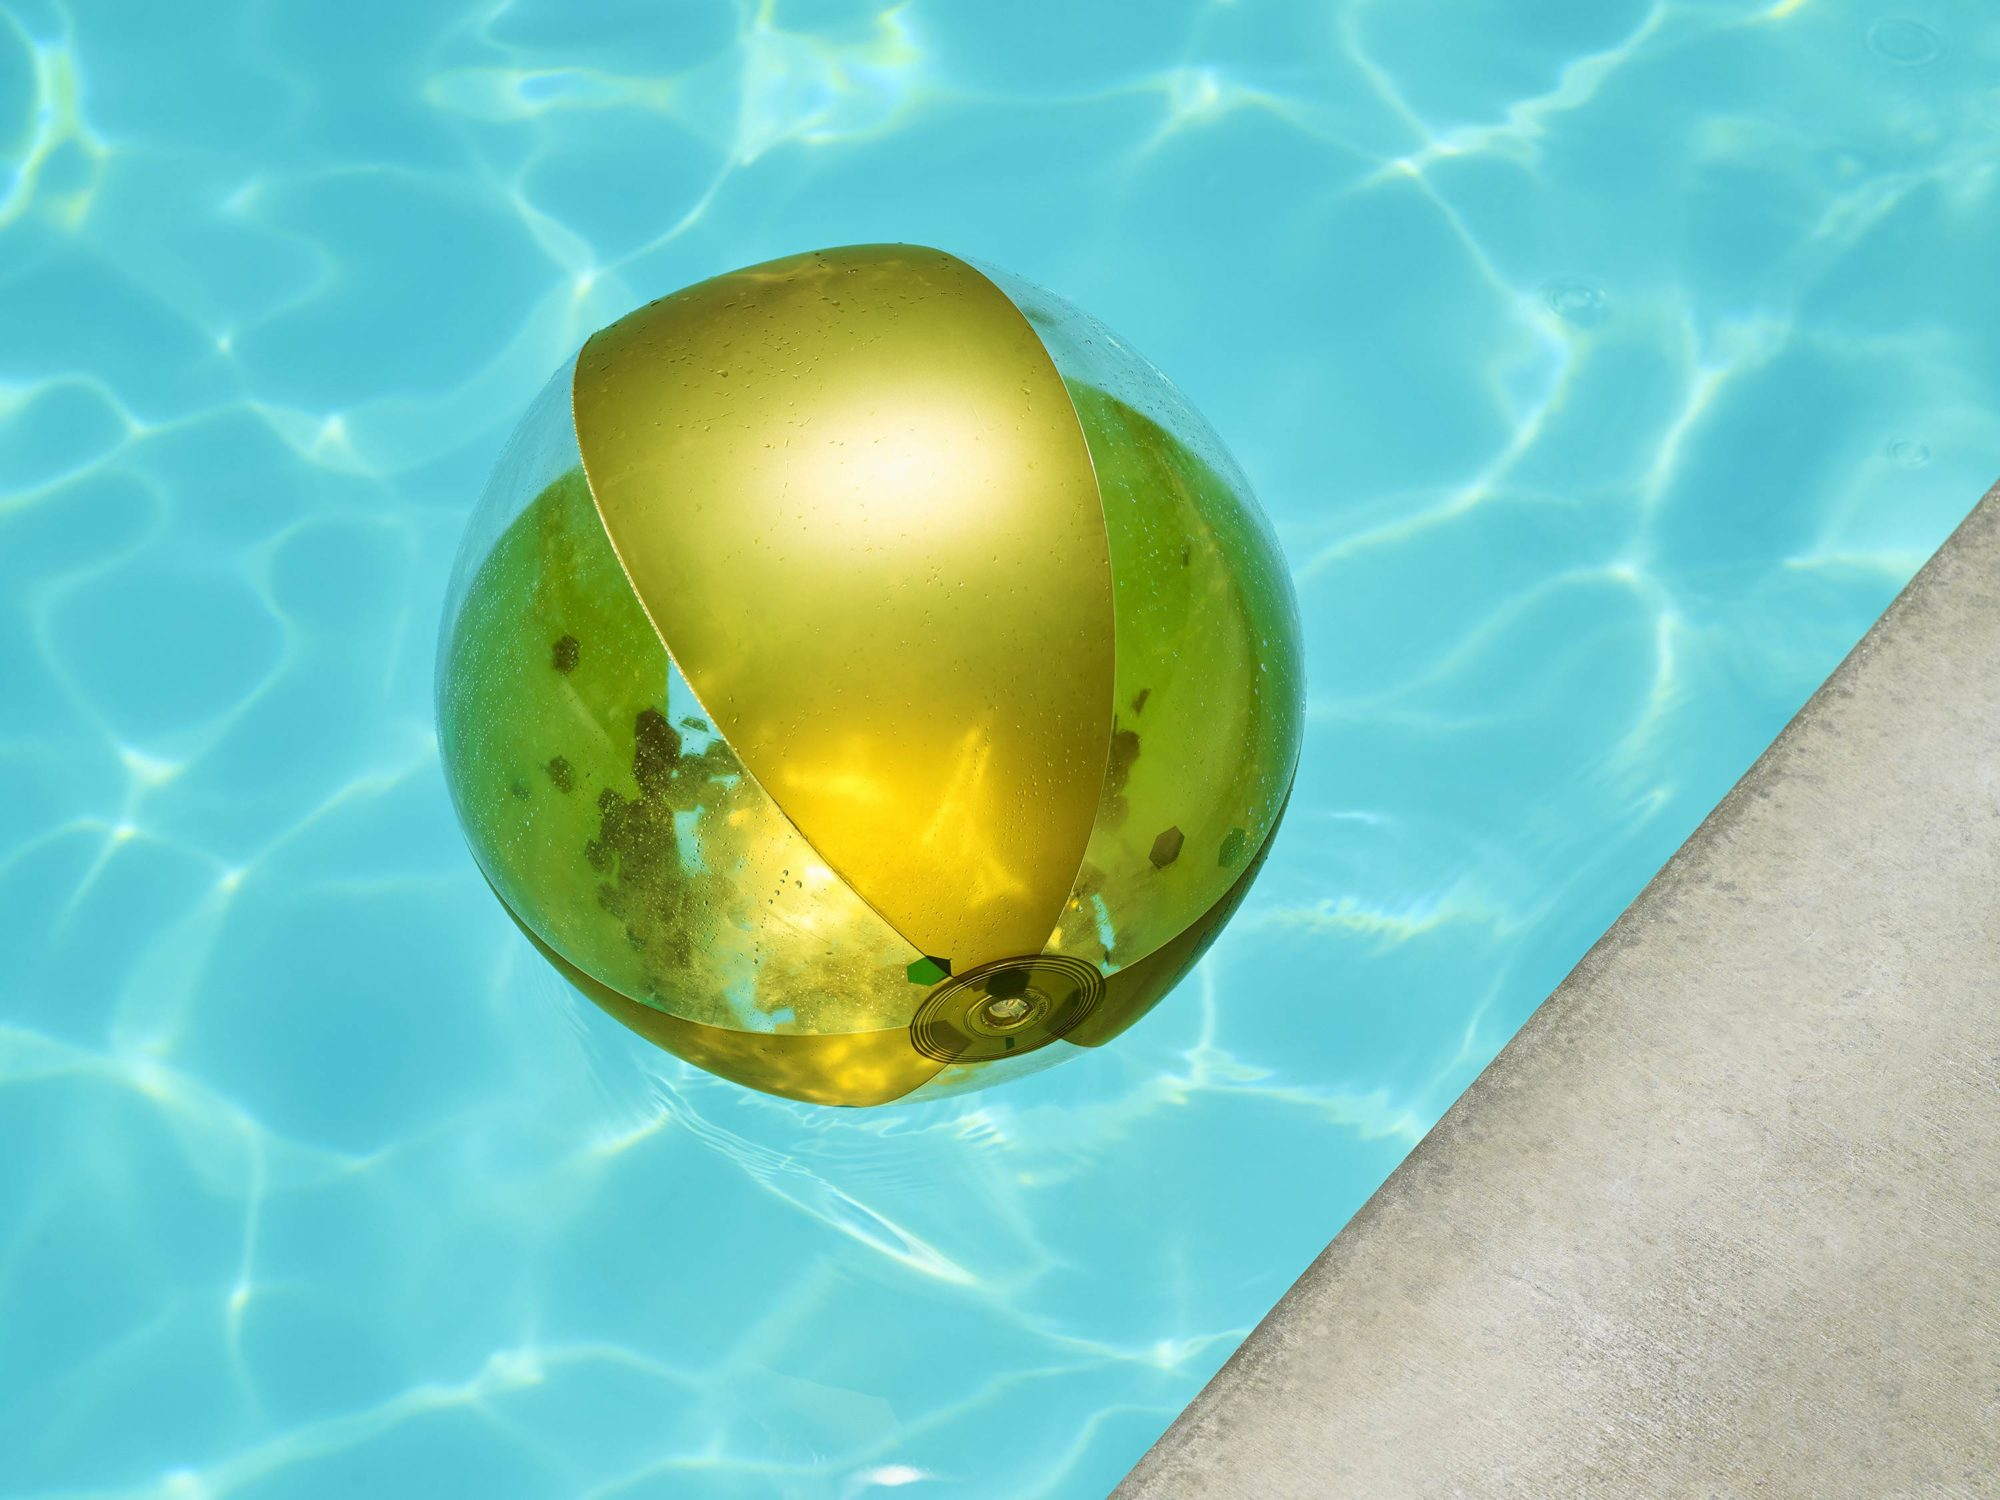 Gold Ball - I Heart Palm Springs Collection - Fine Art Photography by Toby Dixon